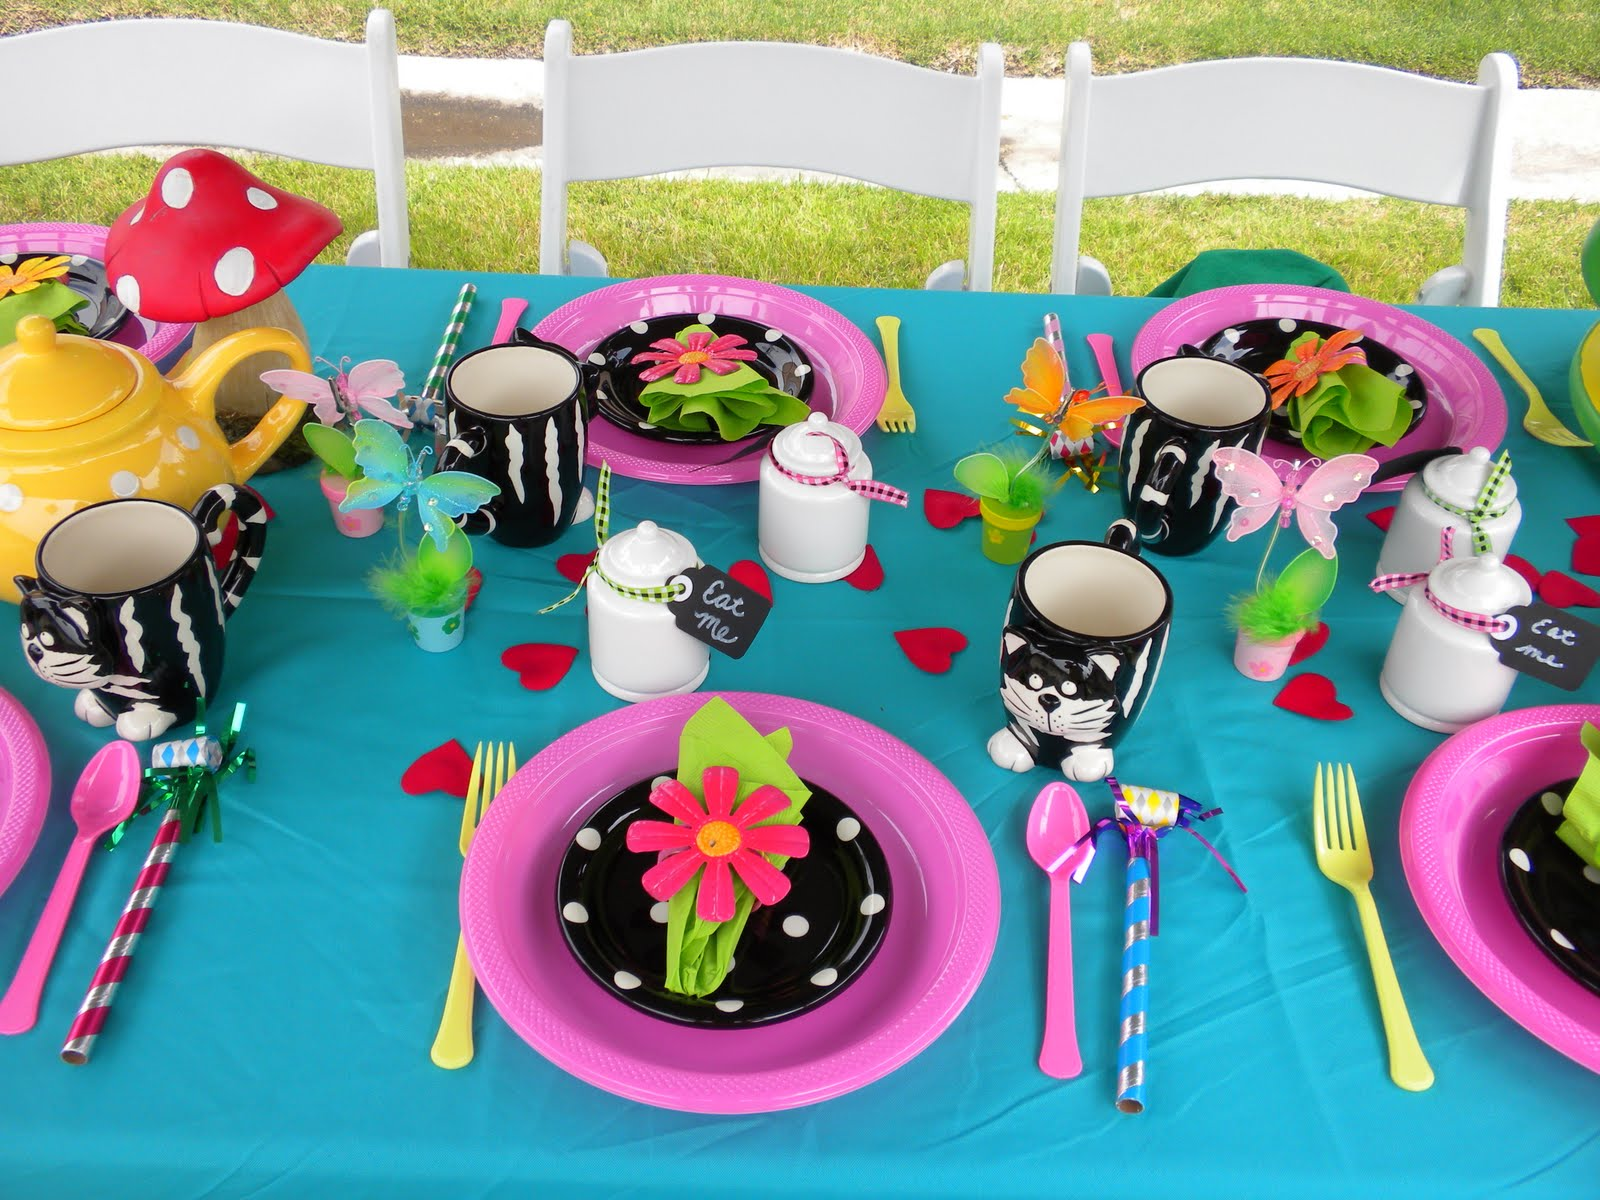 ... birthday party http www frostedevents com birthday parties bridal and